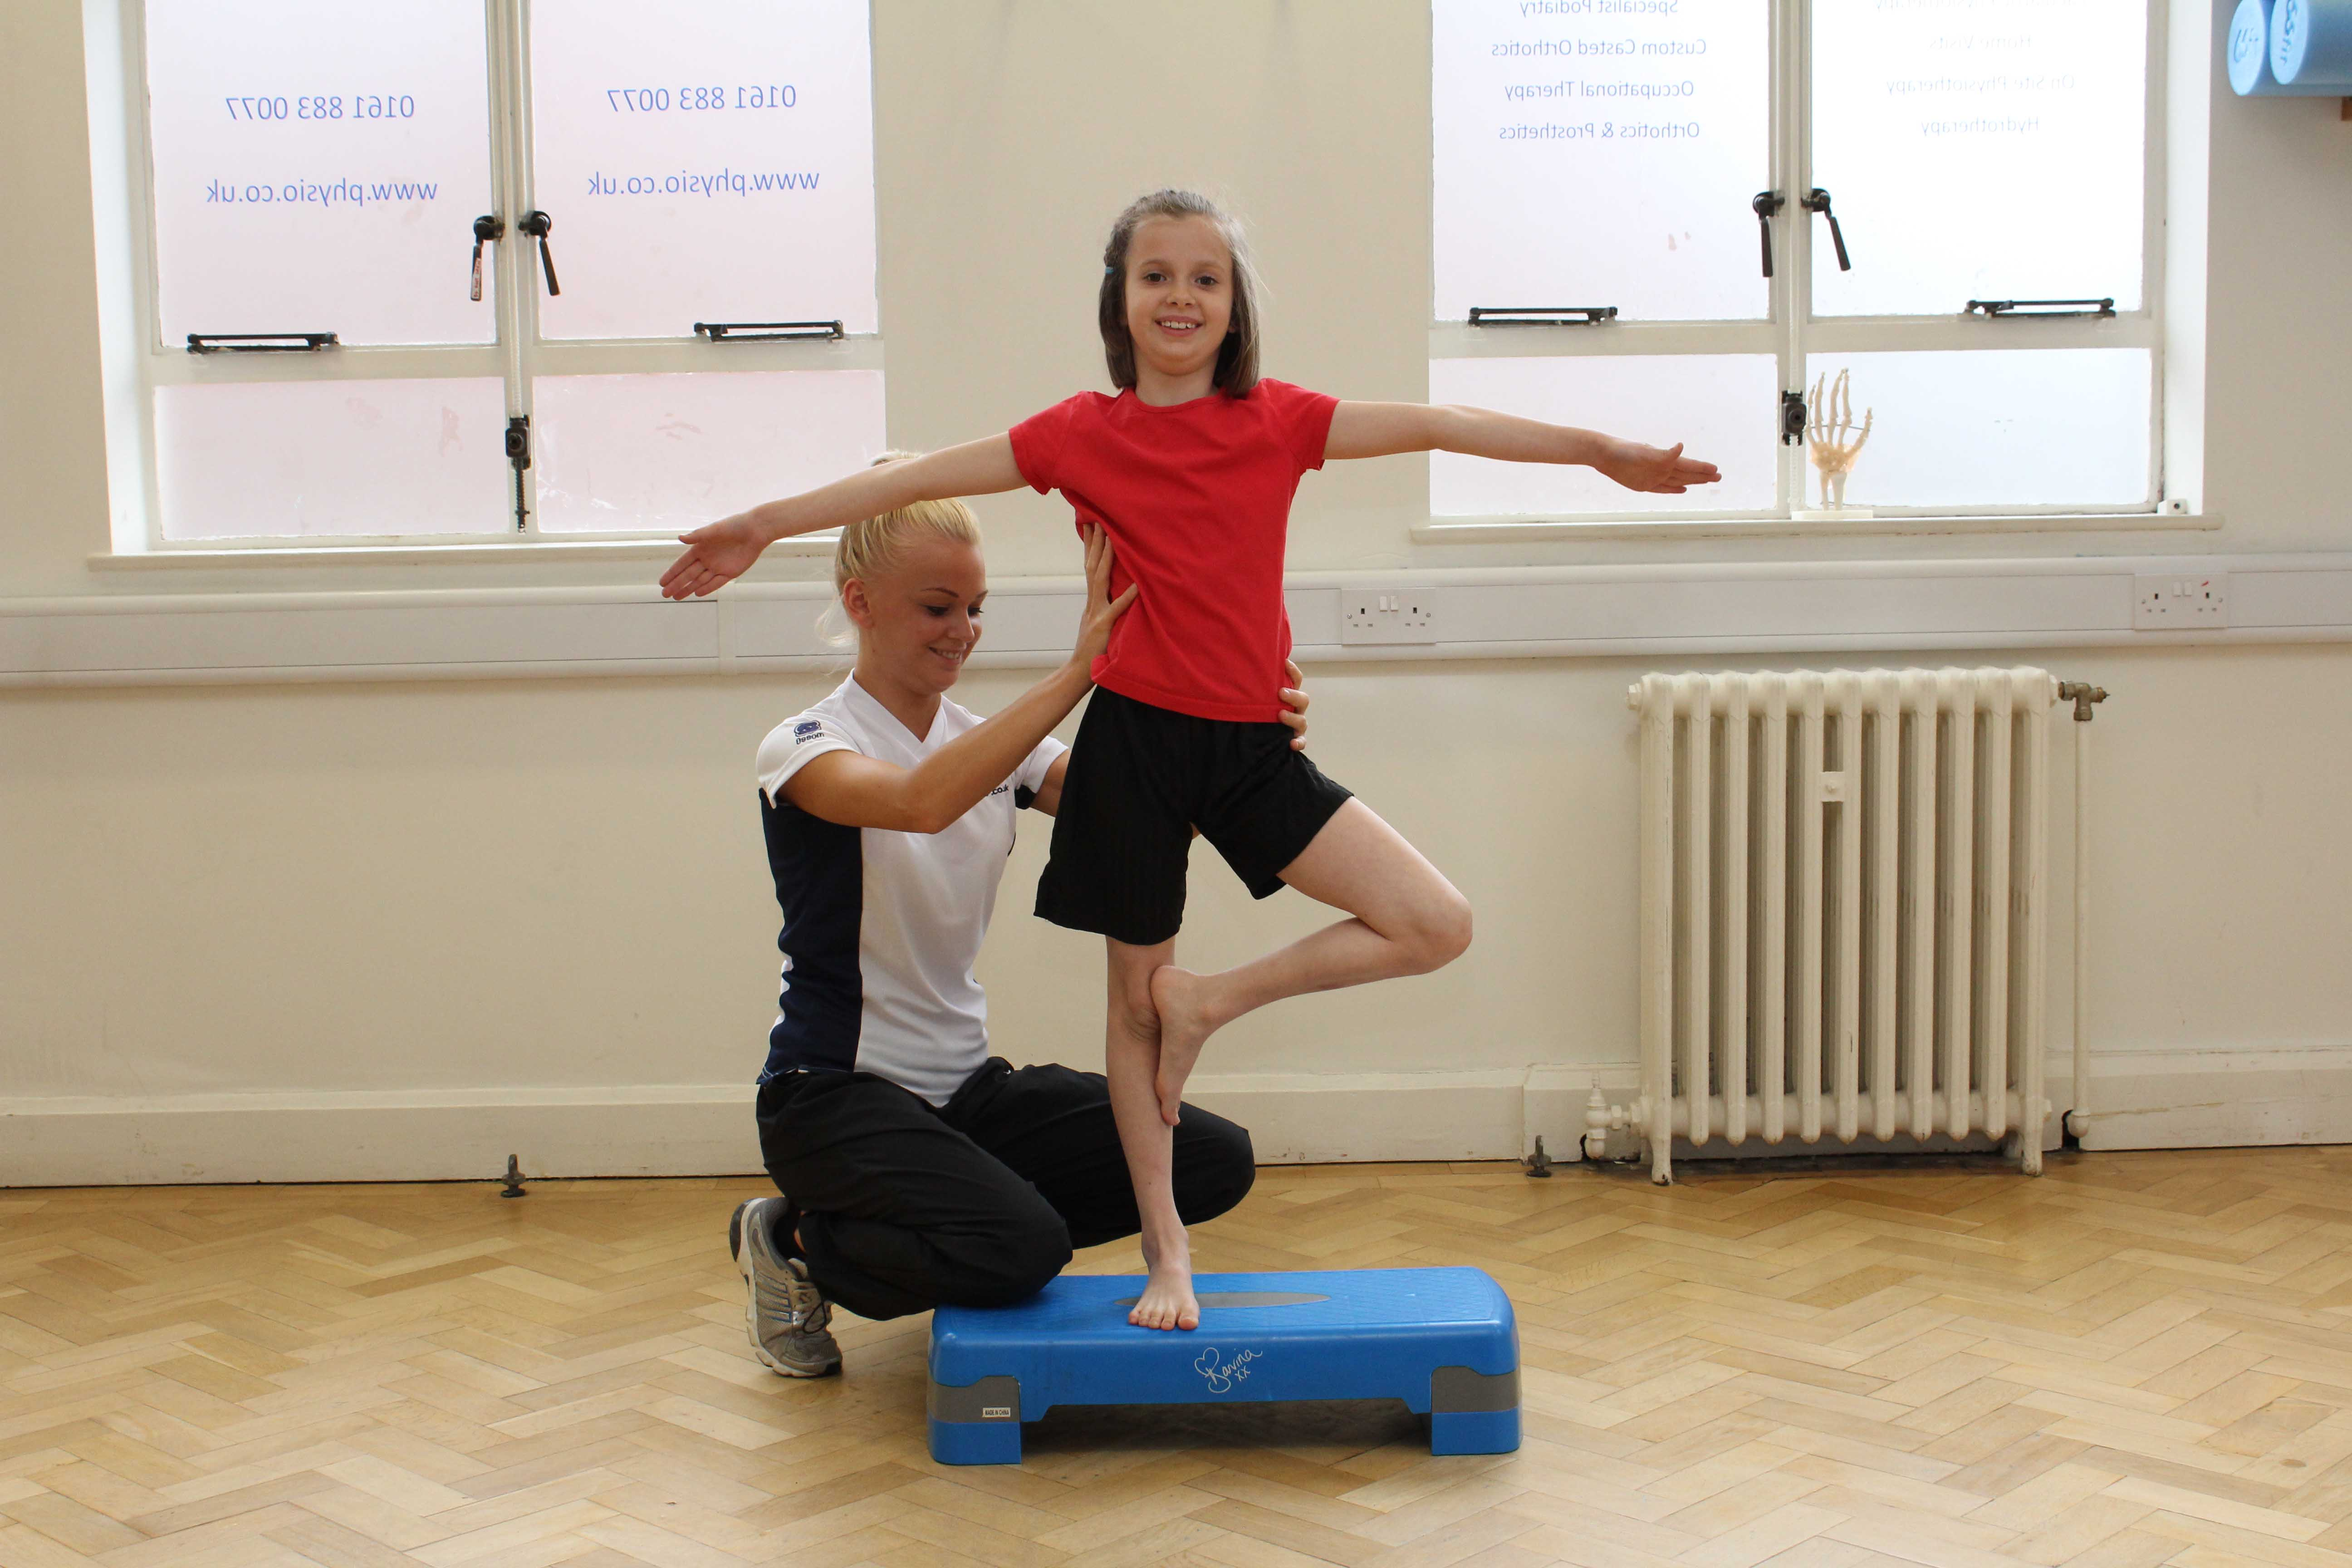 Stability and strengthening exercises assisted by physiotherapist